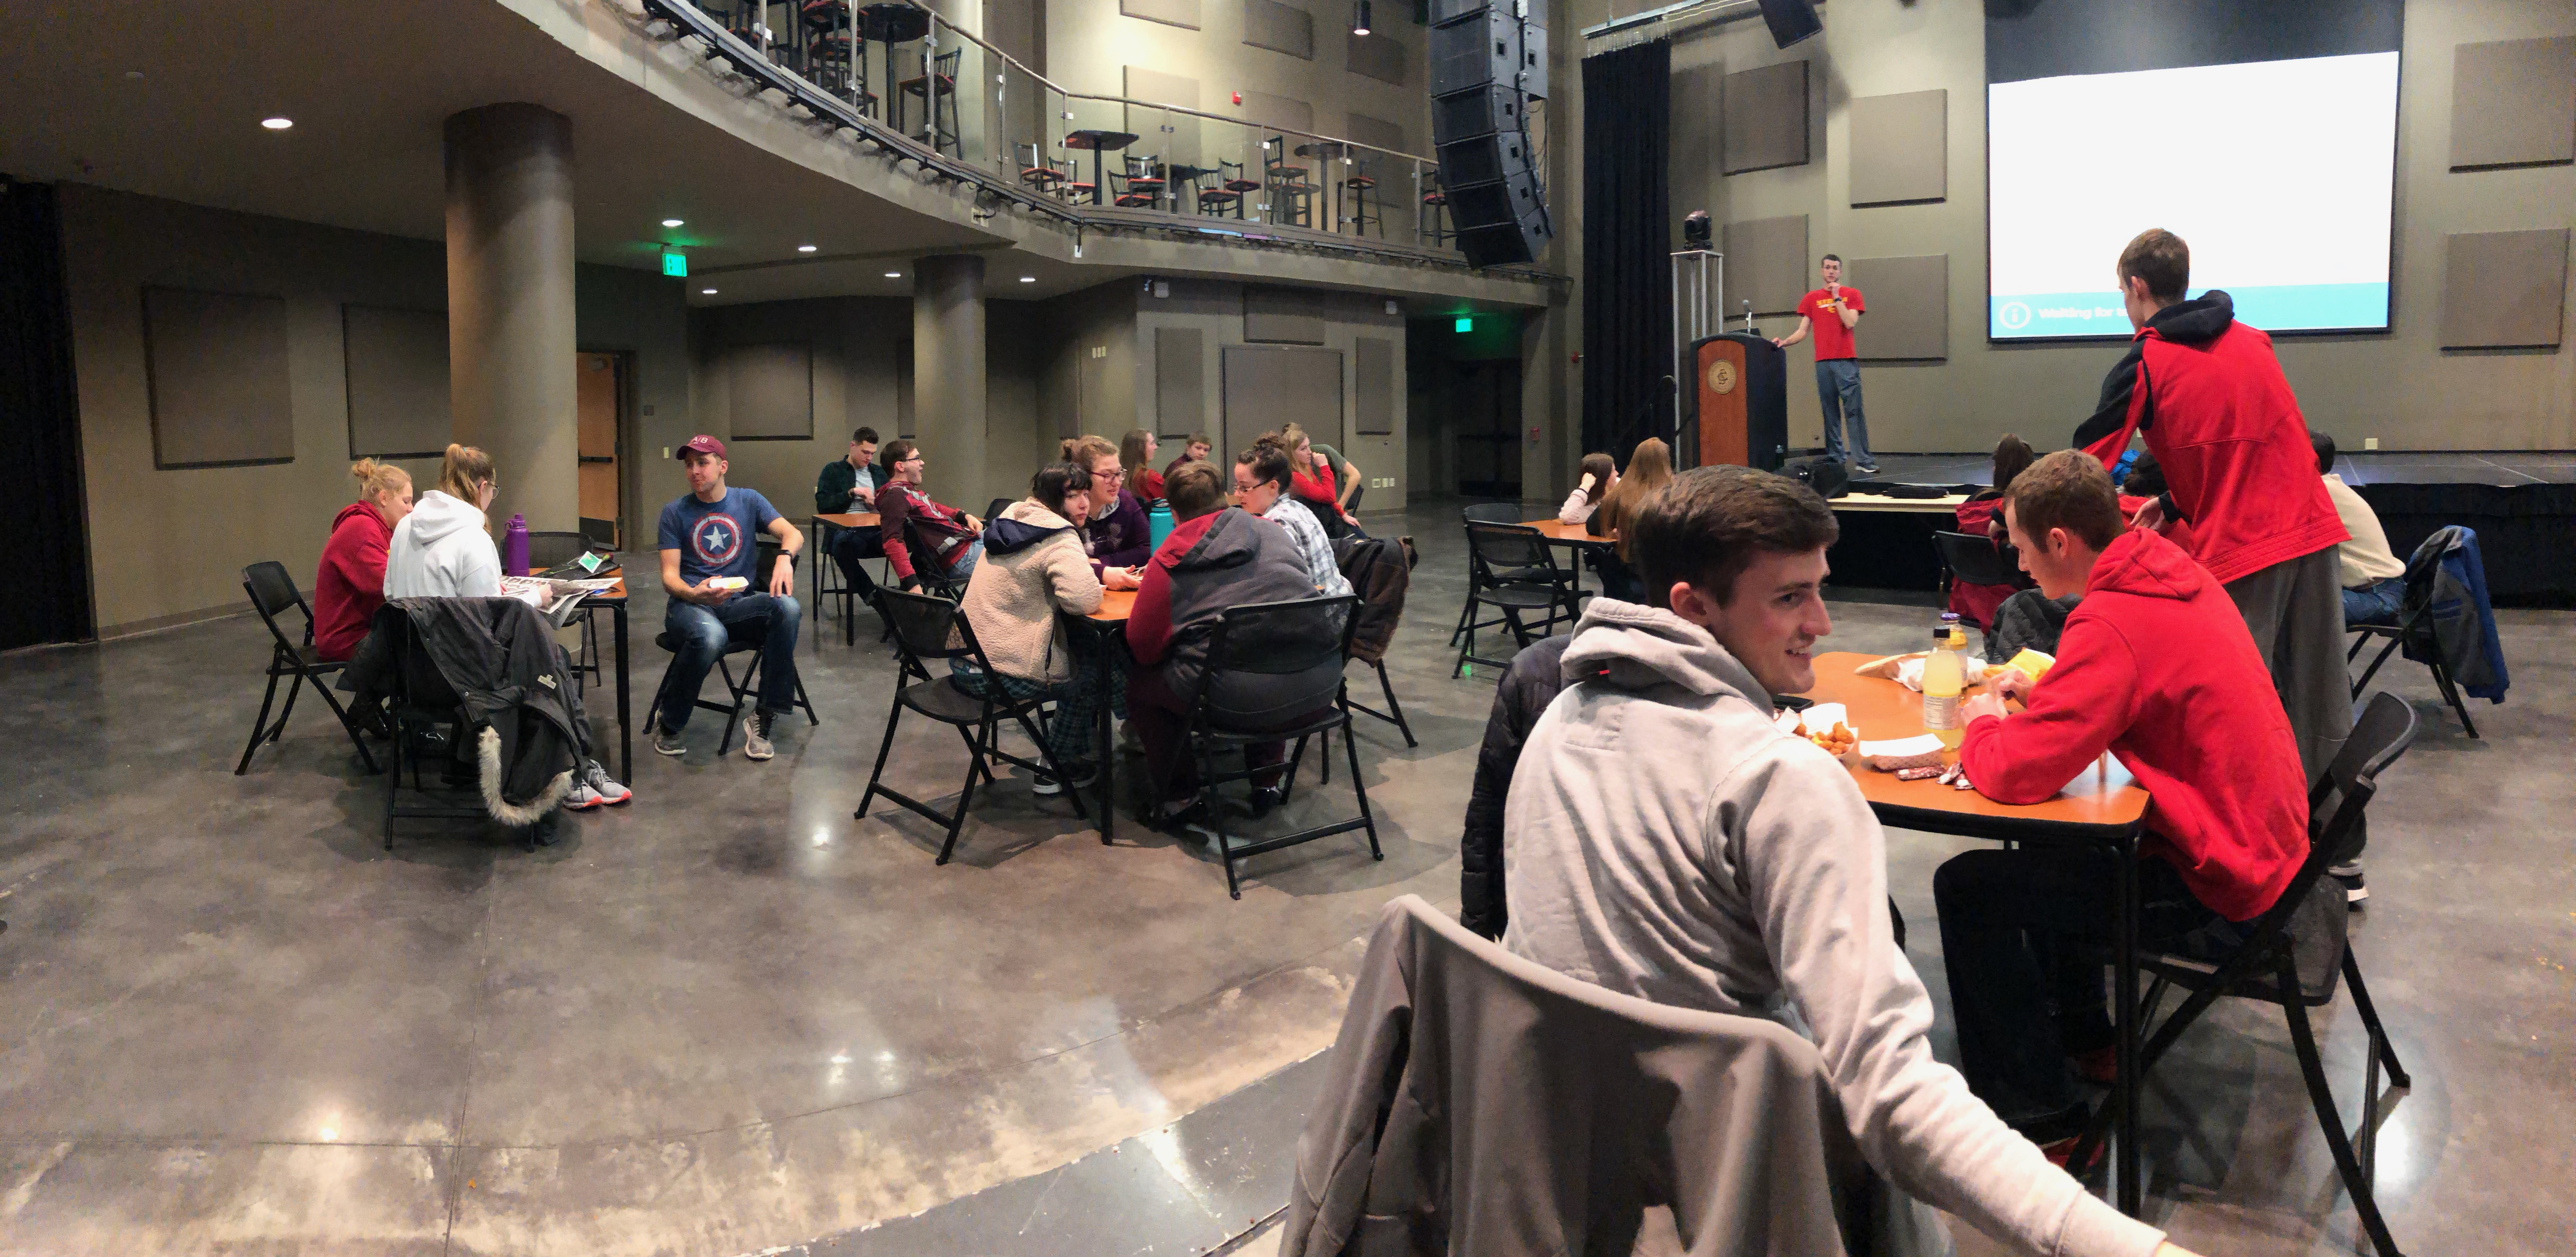 Pictured: Teams prepare as the Iowa History Center Trivia event begins on February 19, 2019